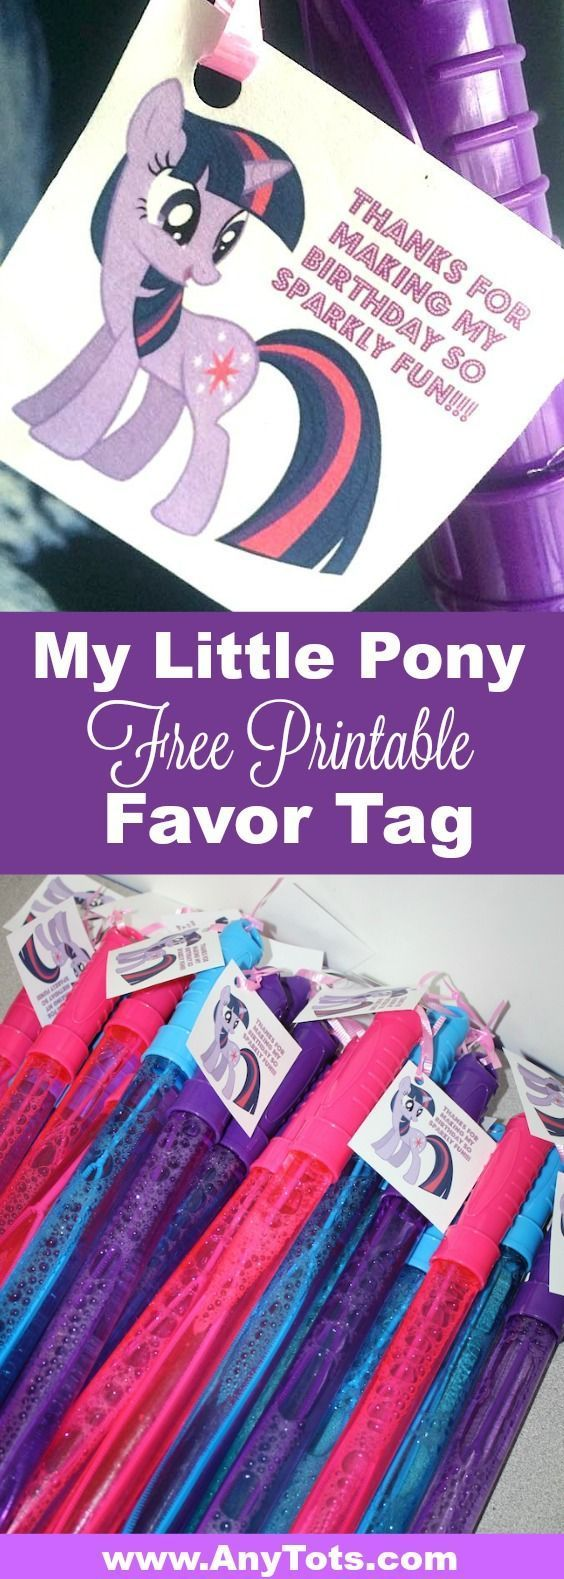 My Little Pony Party Ideas. Use our Free Printable My Little Pony Favor Tag. Check My Little Pony Cupcake, My Little Pony Balloon, and more. www.anytots.com